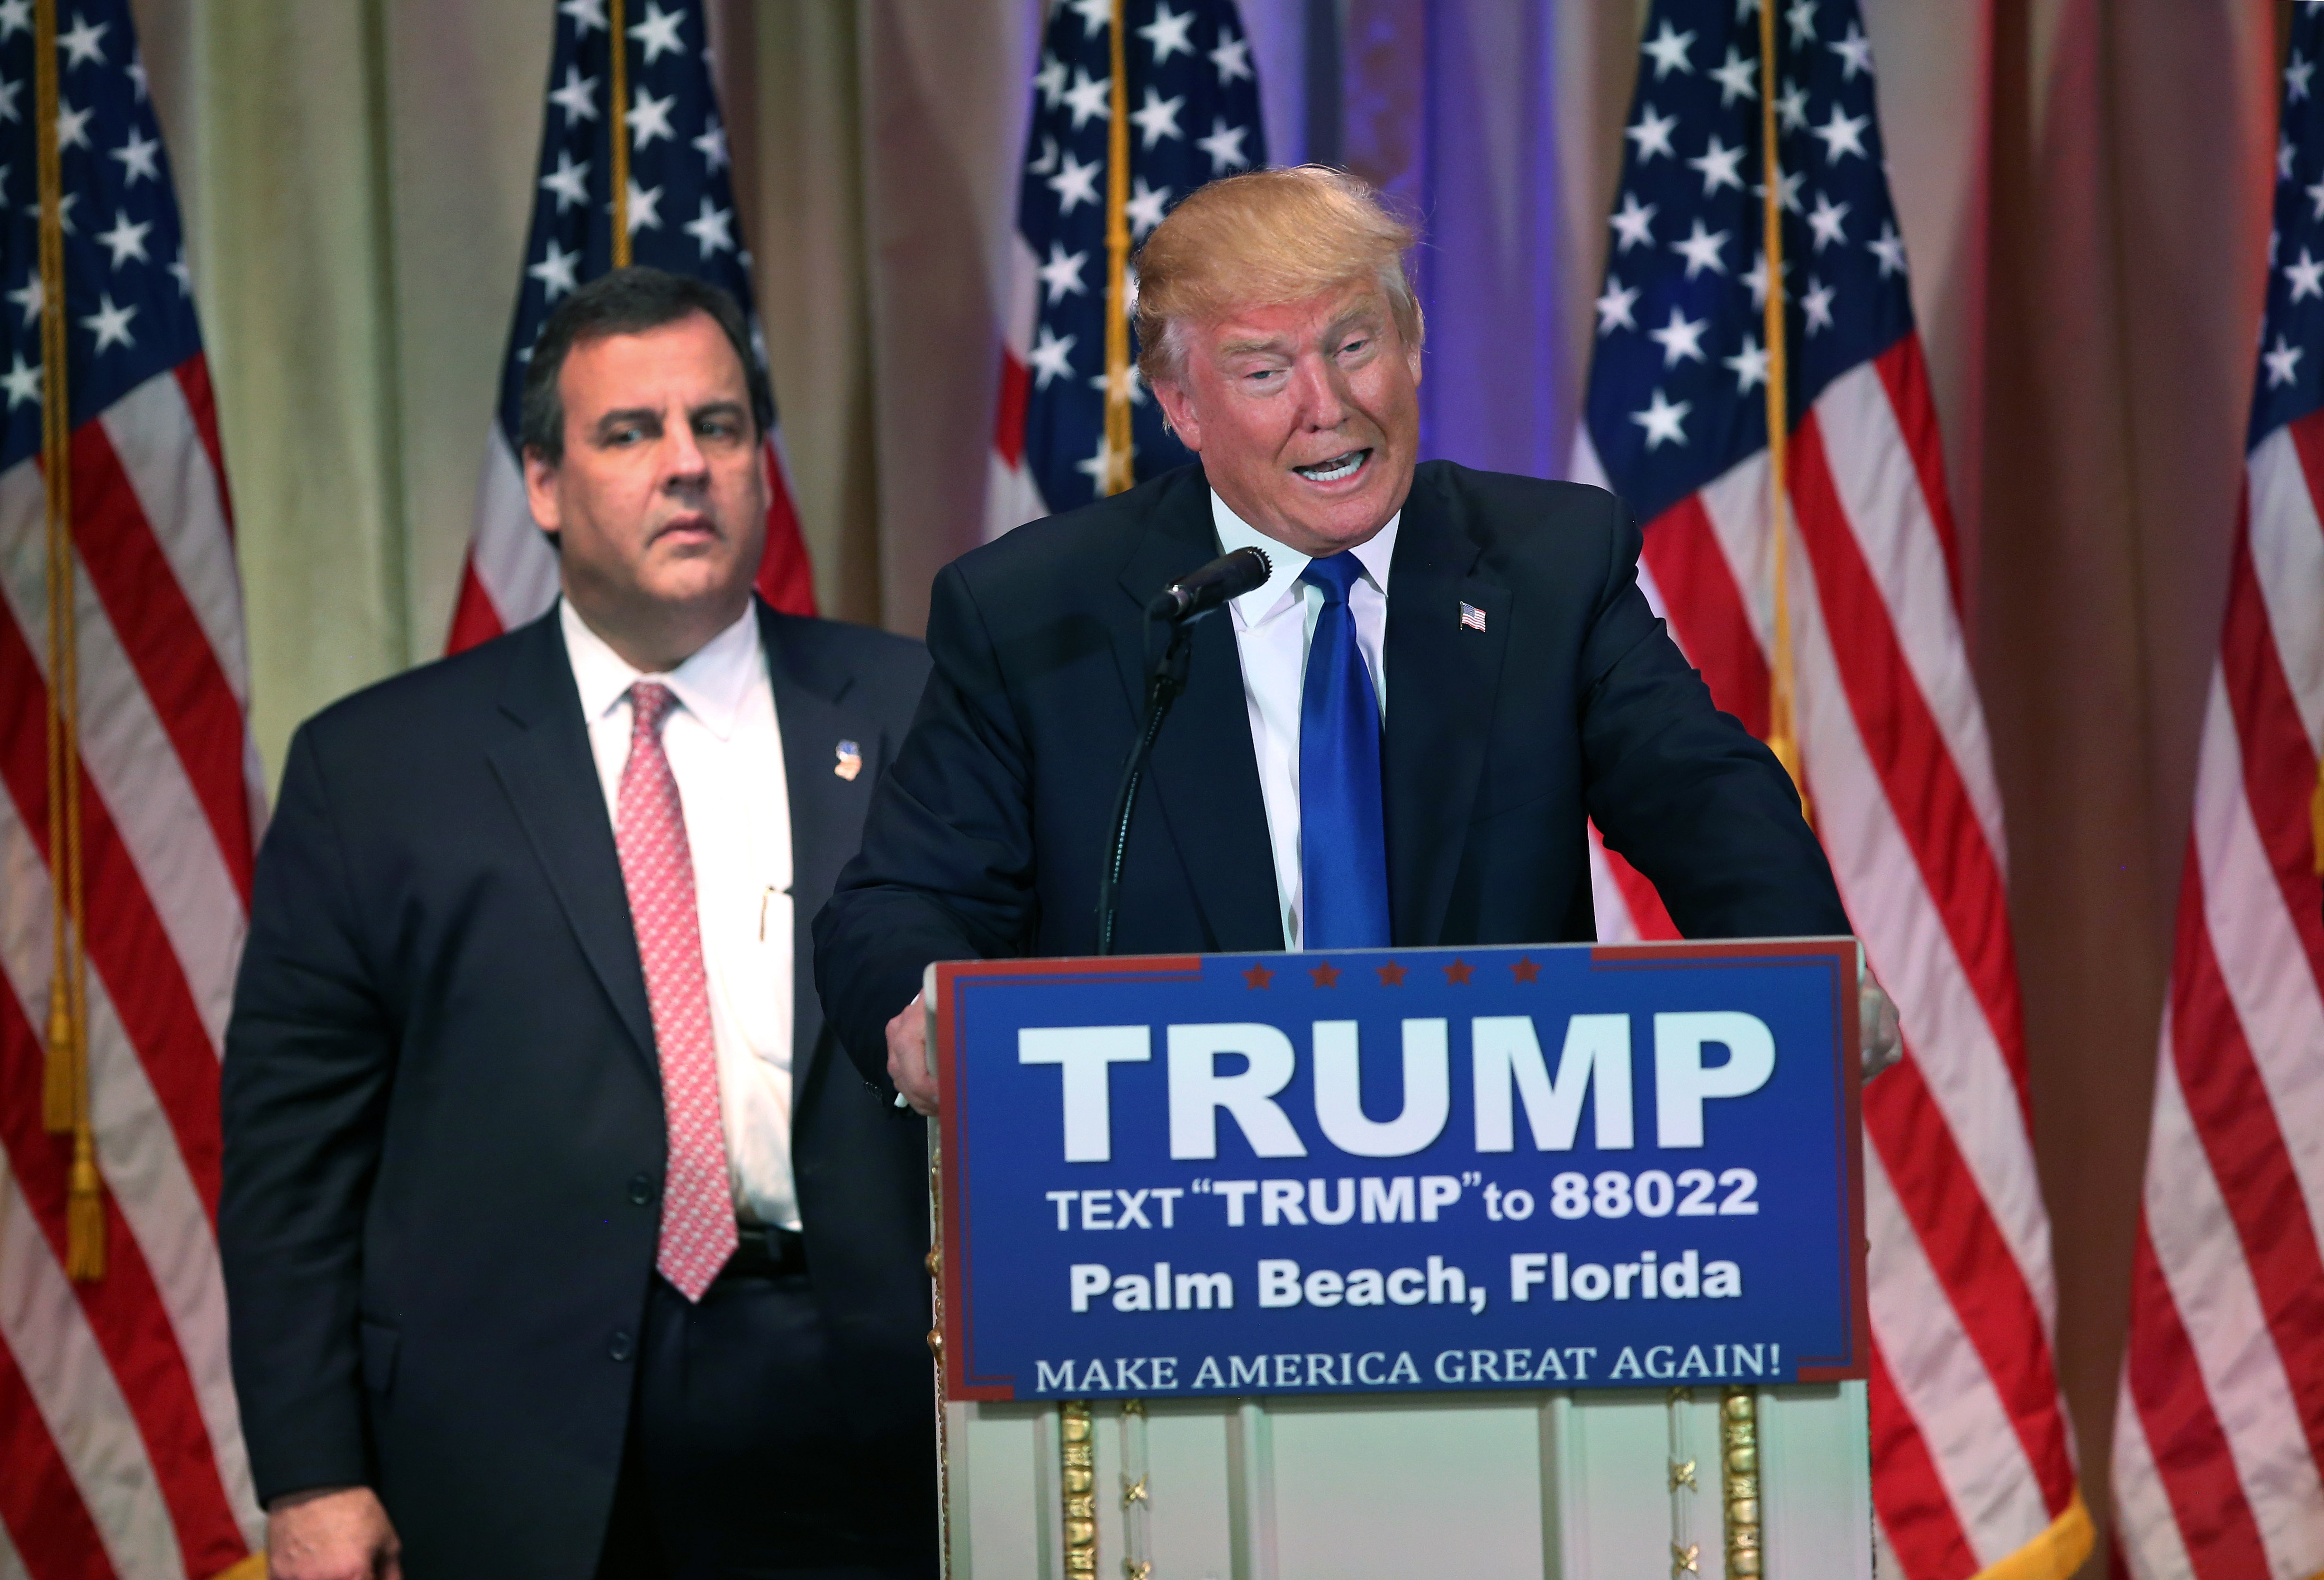 Chris Christie accompanies Donald Trump at a press conference on March 1, 2016 in Palm Beach, Fla.